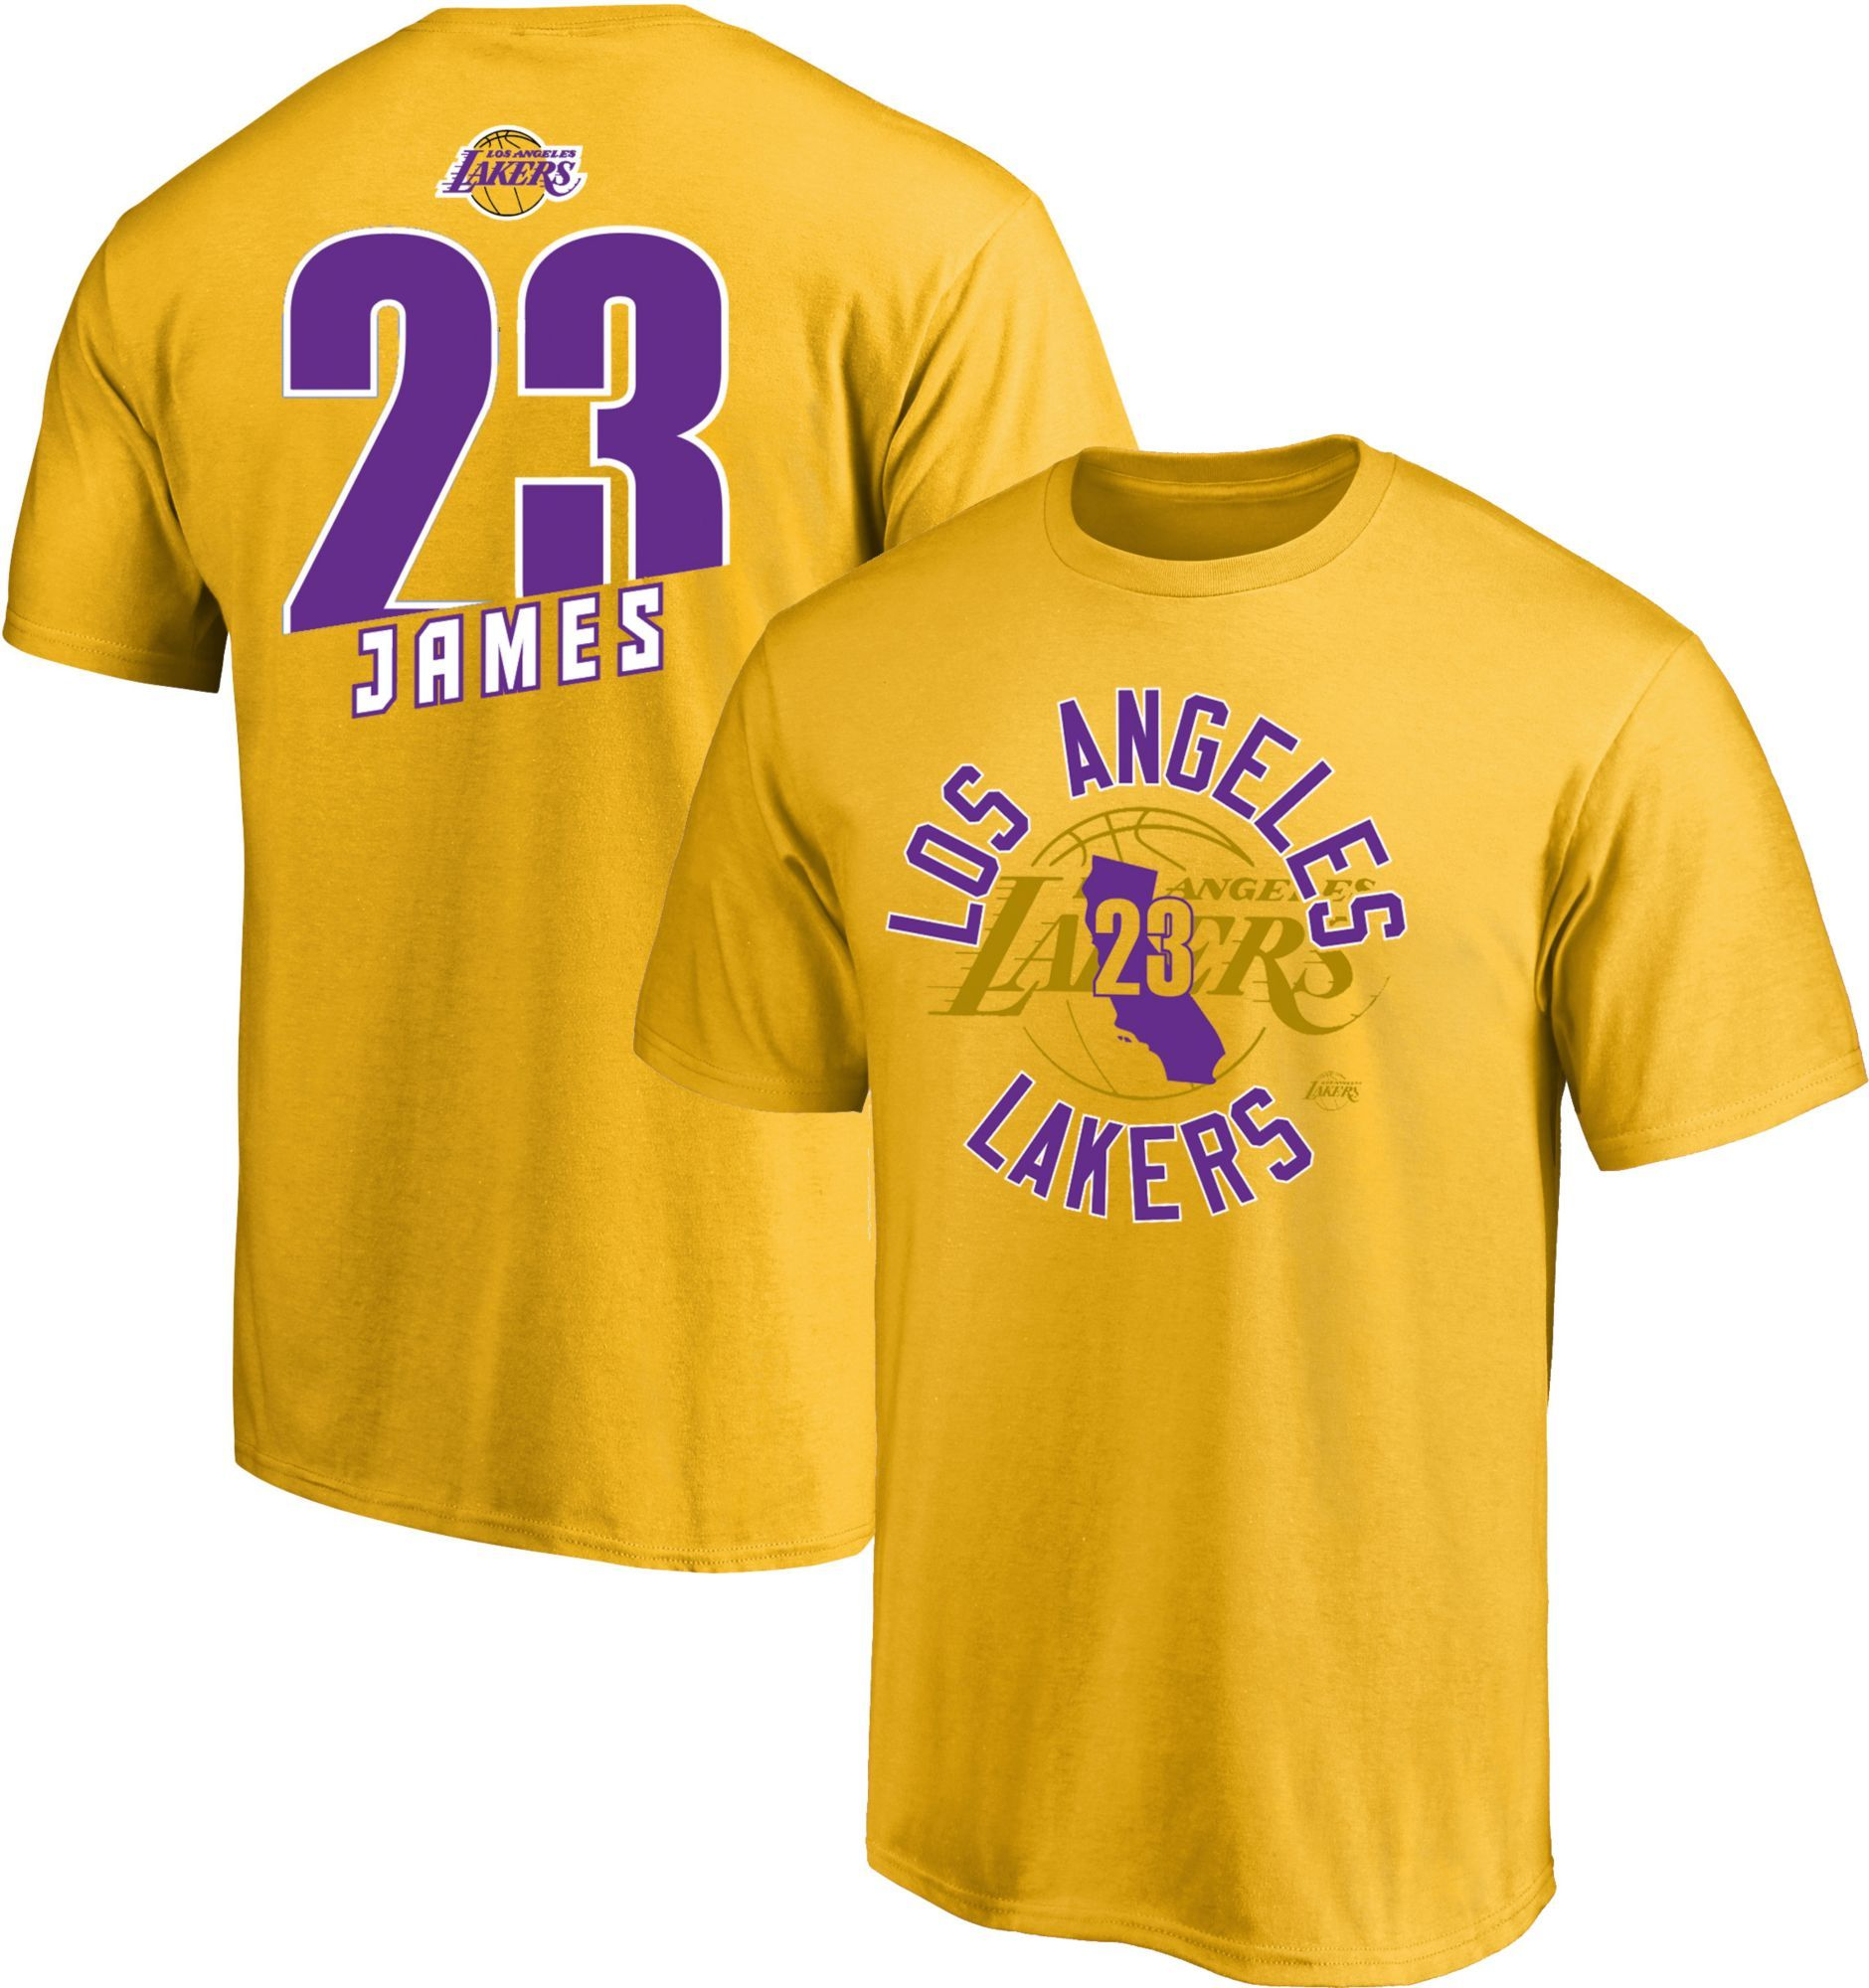 294fe0292 Majestic Men s Los Angeles Lakers LeBron James  23 Gold T-Shirt ...